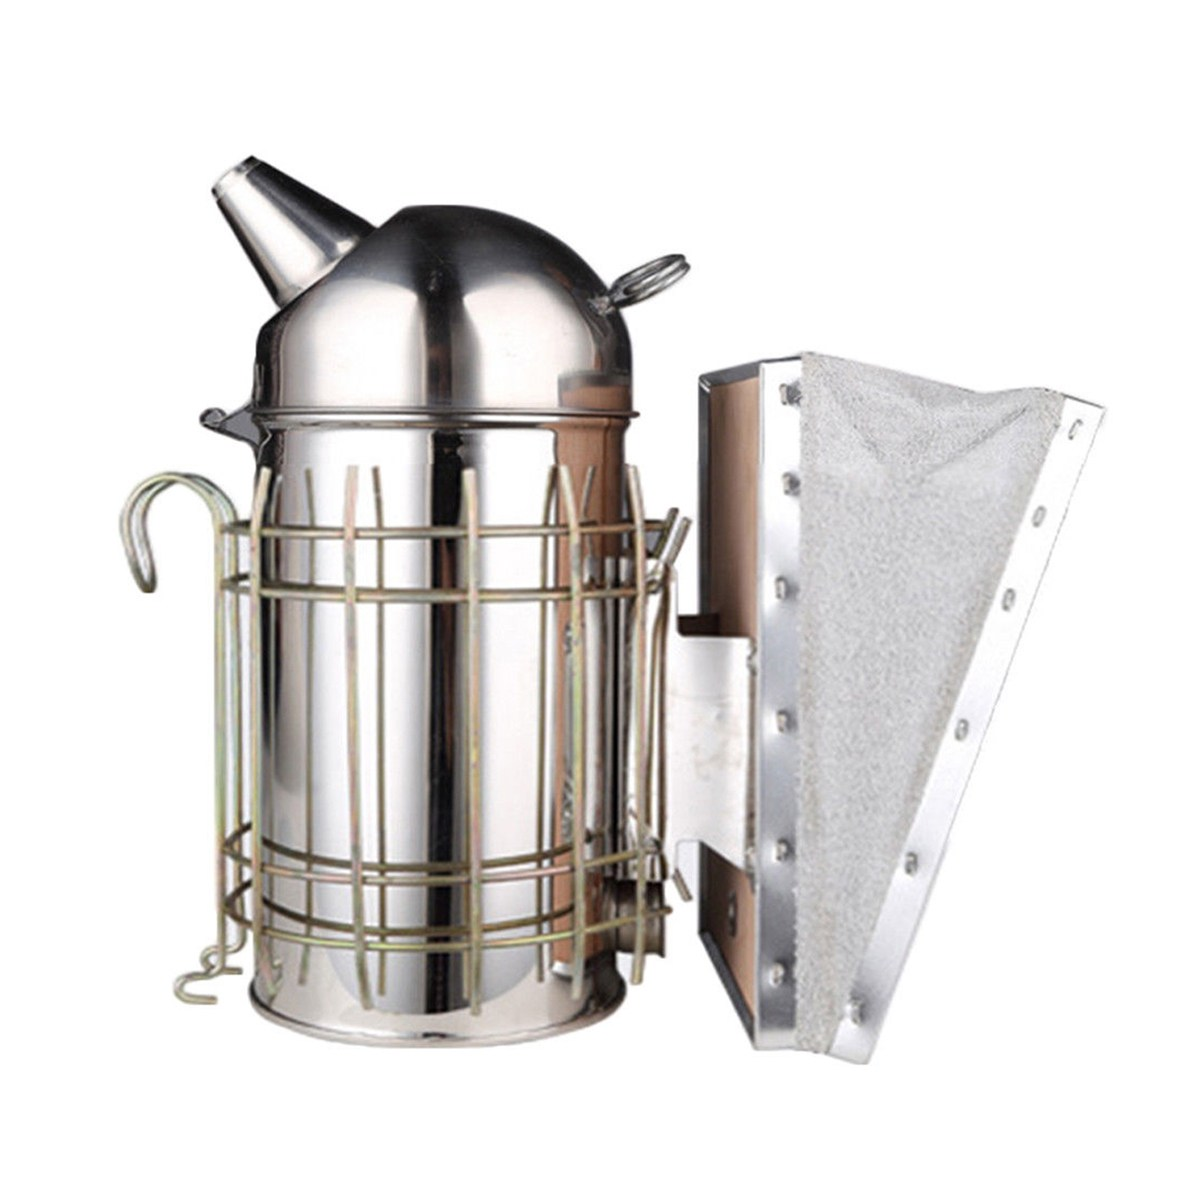 Stainless Steel Bee Hive Box Smoker Large Beekeeping Equipment With Hanging Hook Apiculture Tools Accessories Supplies